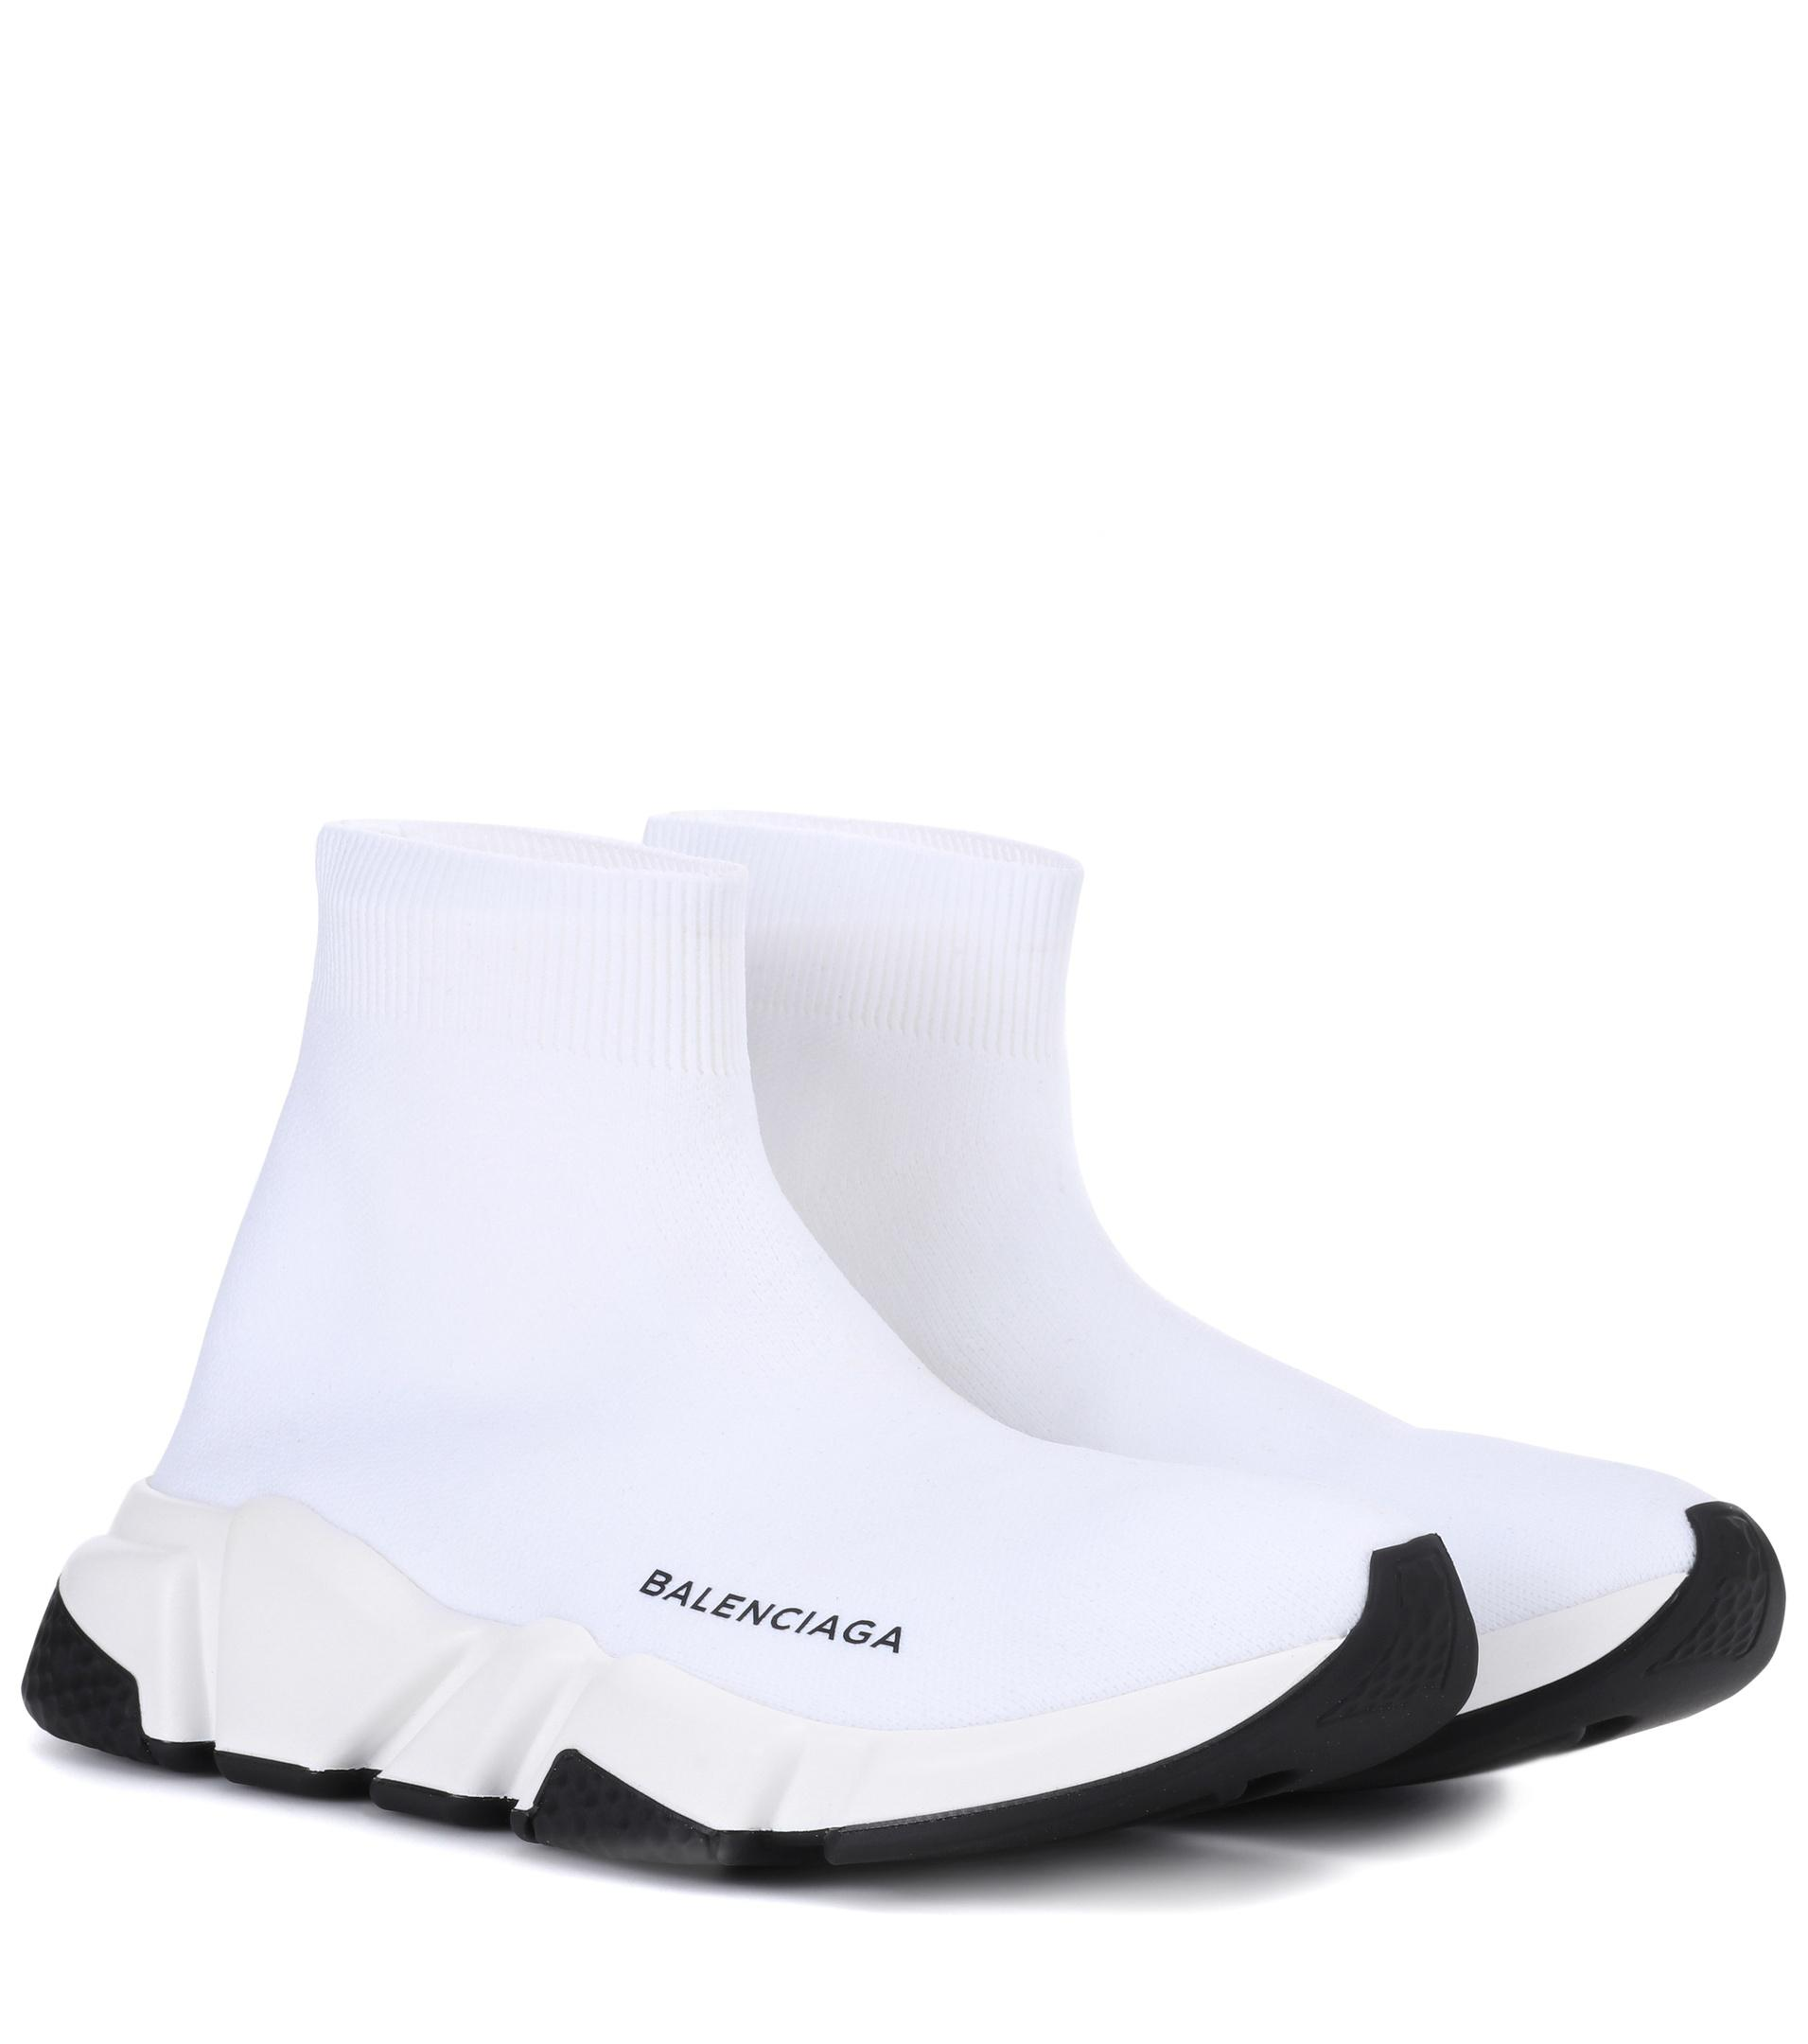 Balenciaga Low-Top Sneakers Slip-On SPEED TRAINER cotton blend Logo print black k1zGAQI